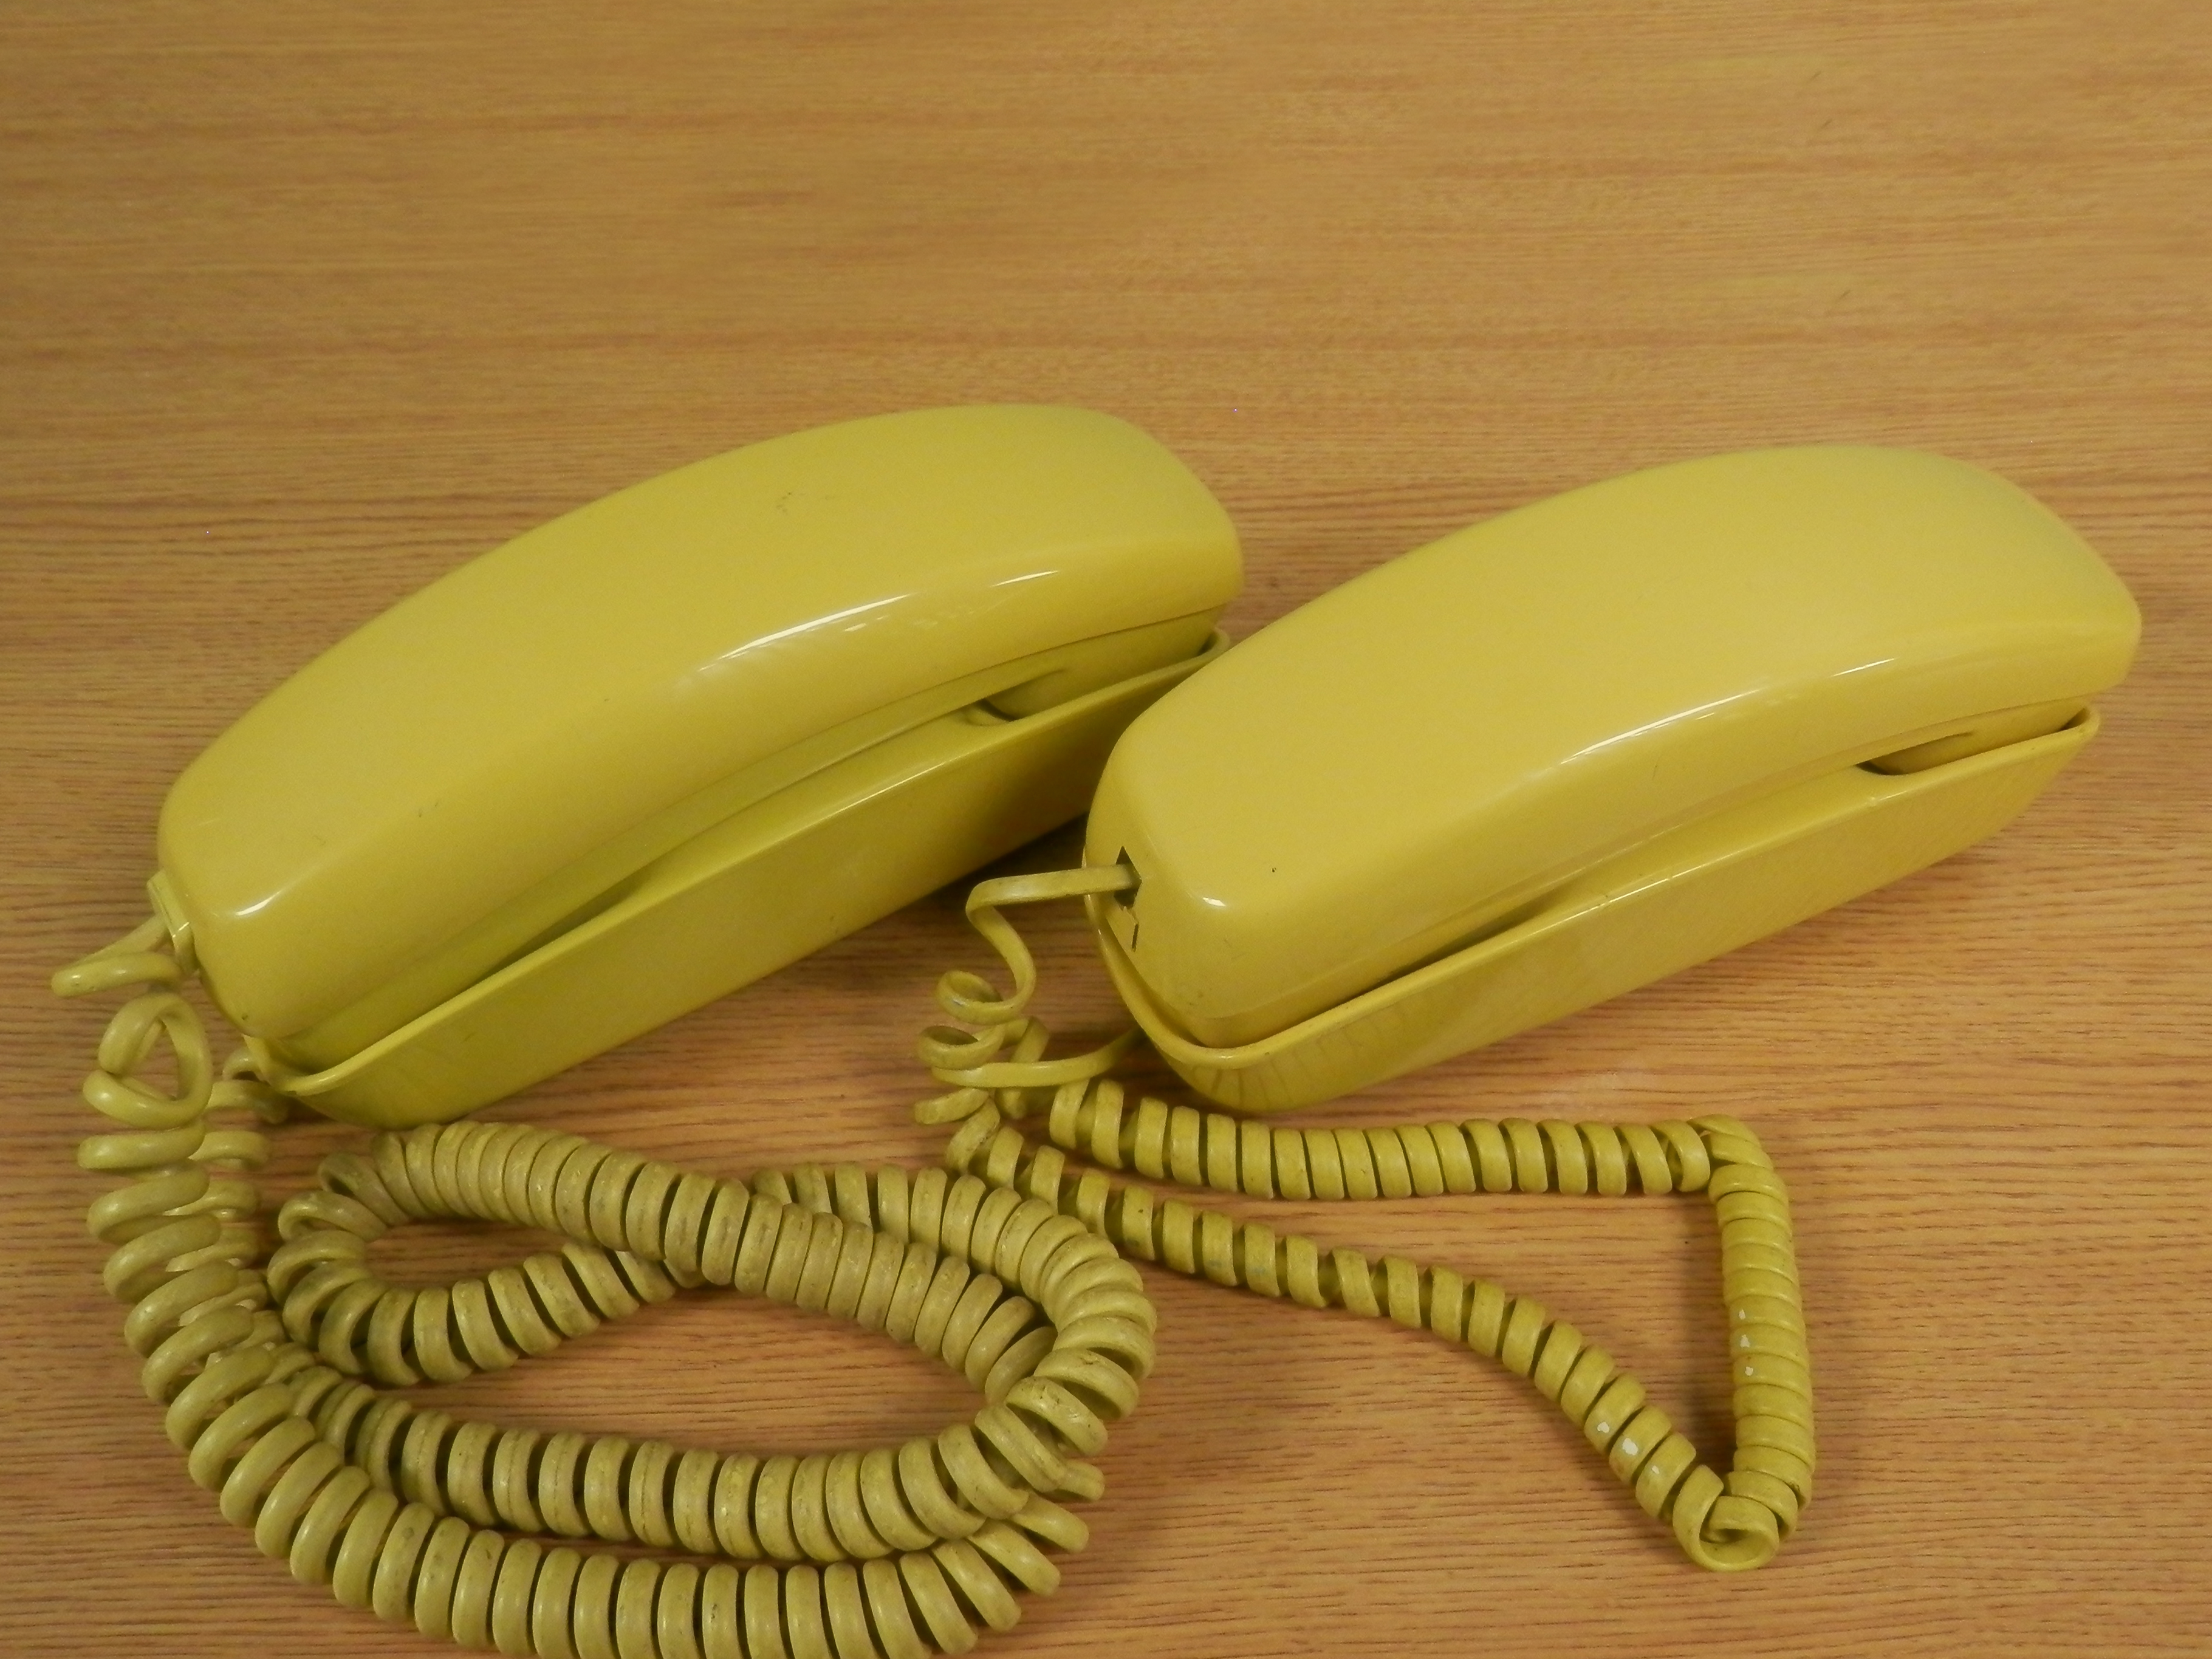 Trimline Phones yellow